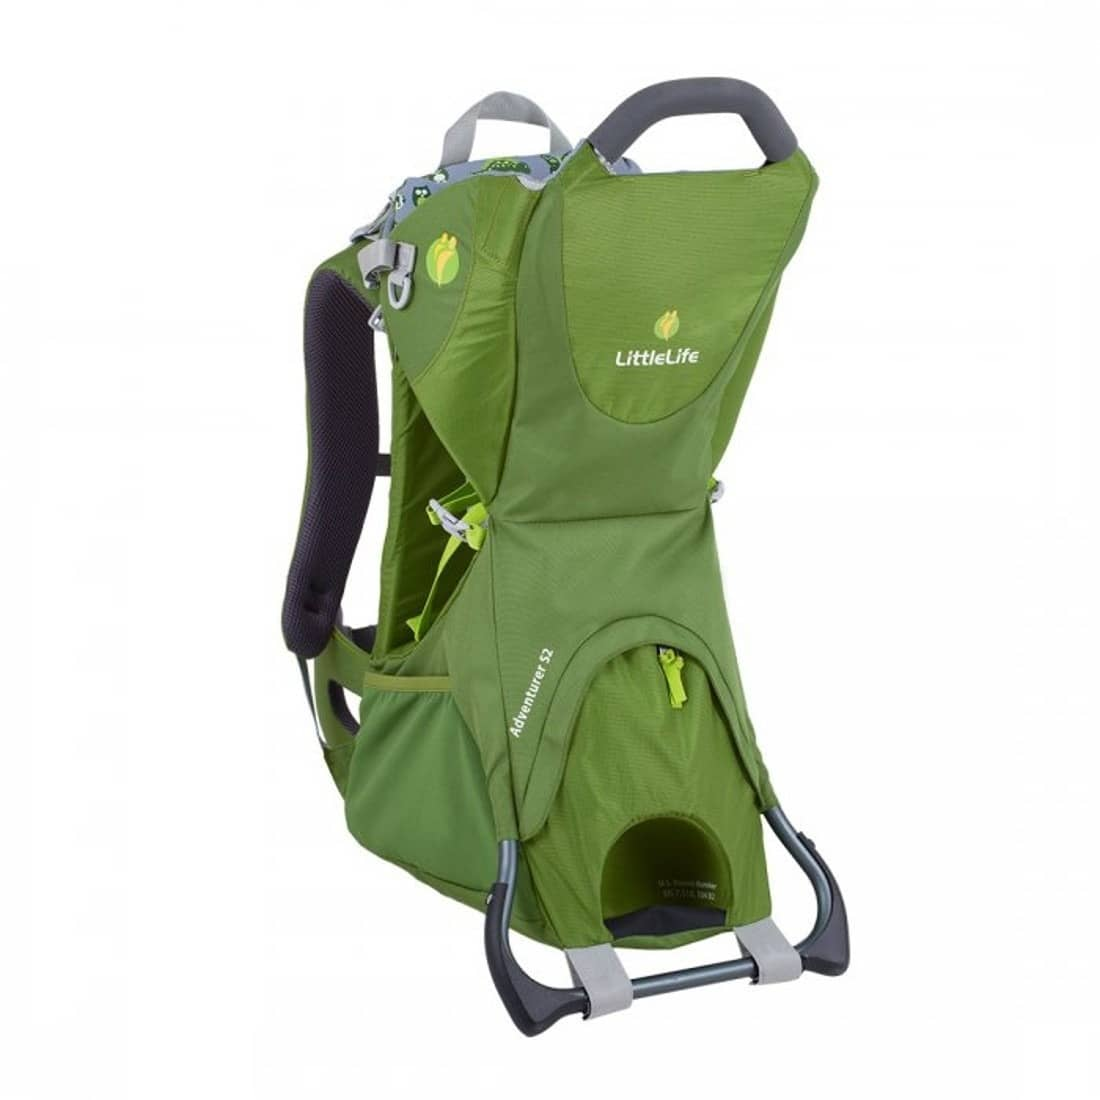 Backpack, Product, Bag, Green